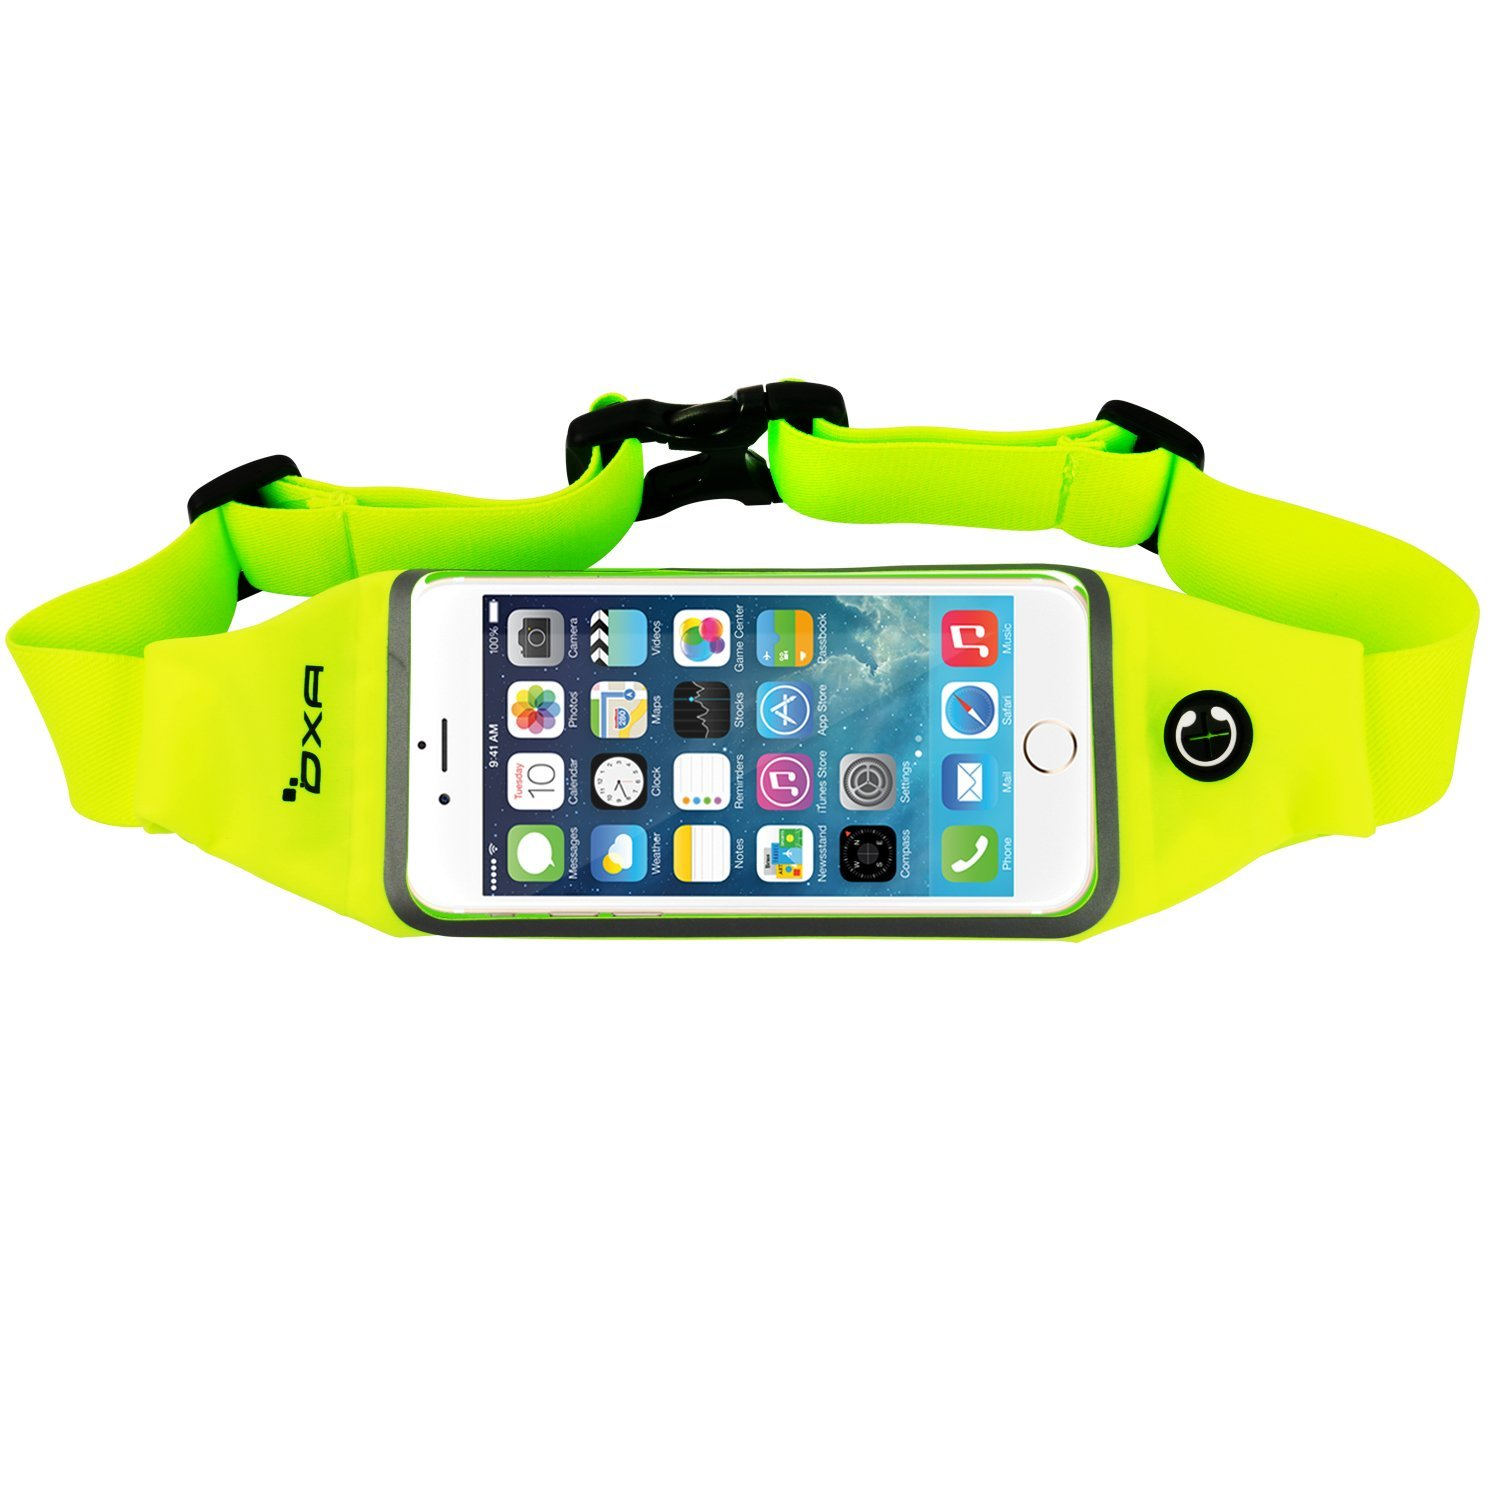 OXA Running Belt Waist Bag - Sweatproof Reflective Sports Waist Pack with  Clear Touch Screen Window - Adjustable Belt and Earbud Jack for iPhone 6/6S